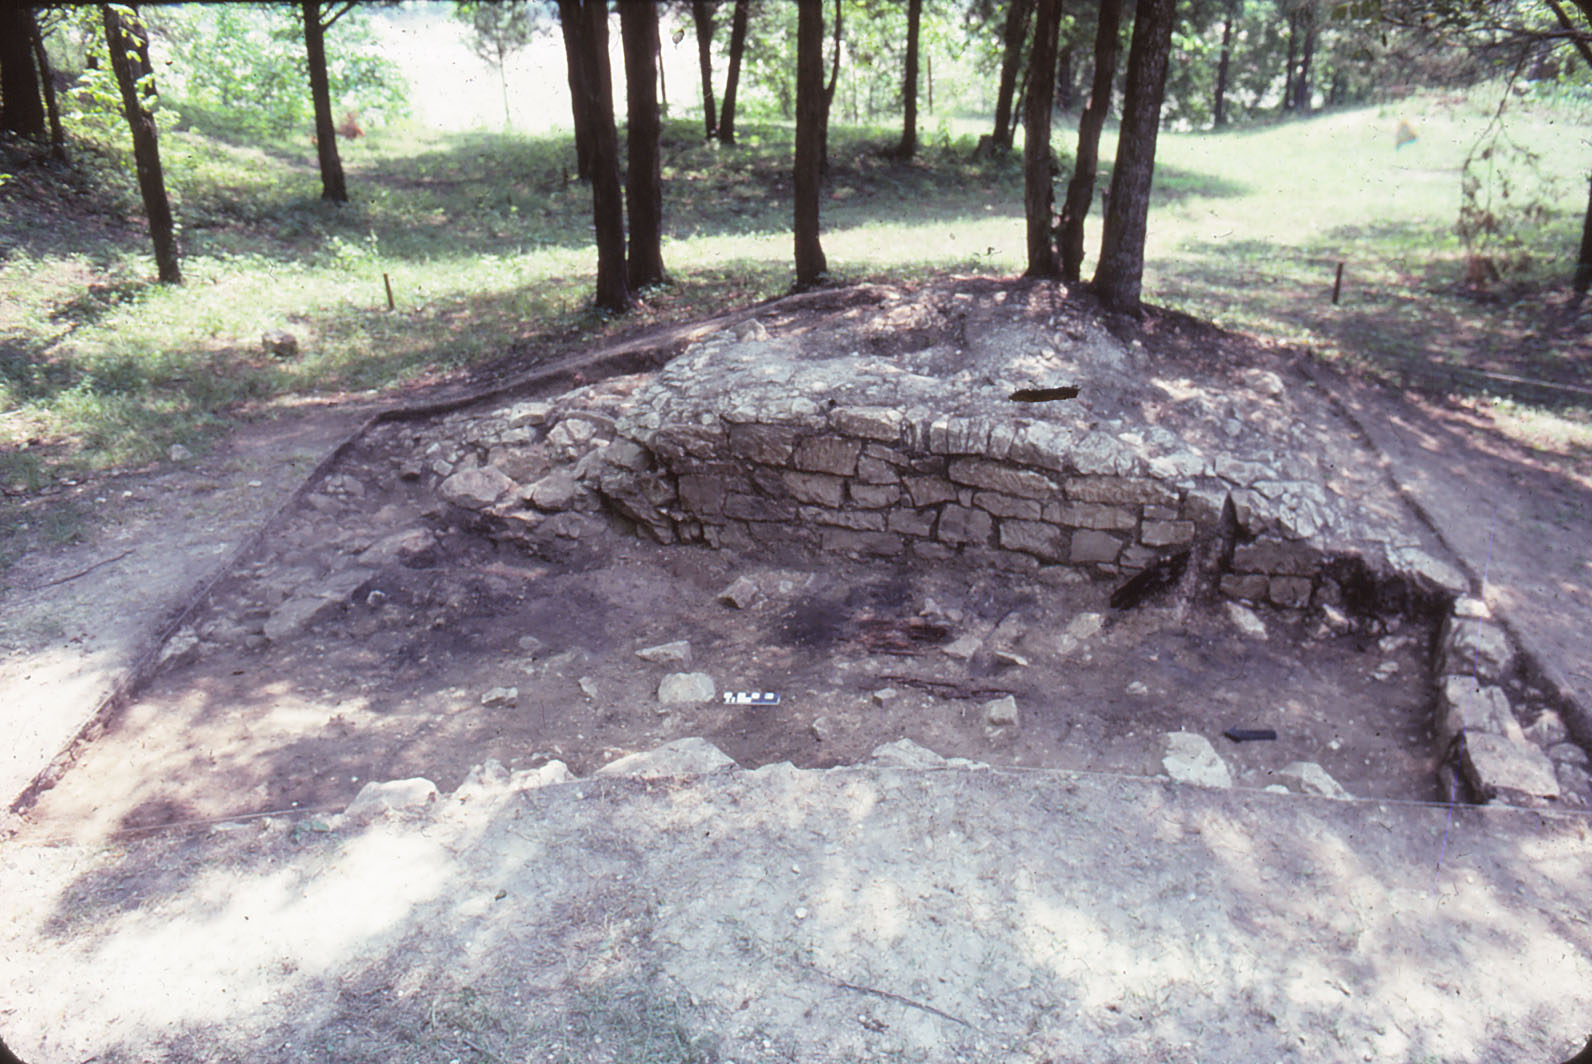 Remains of Spanish oven